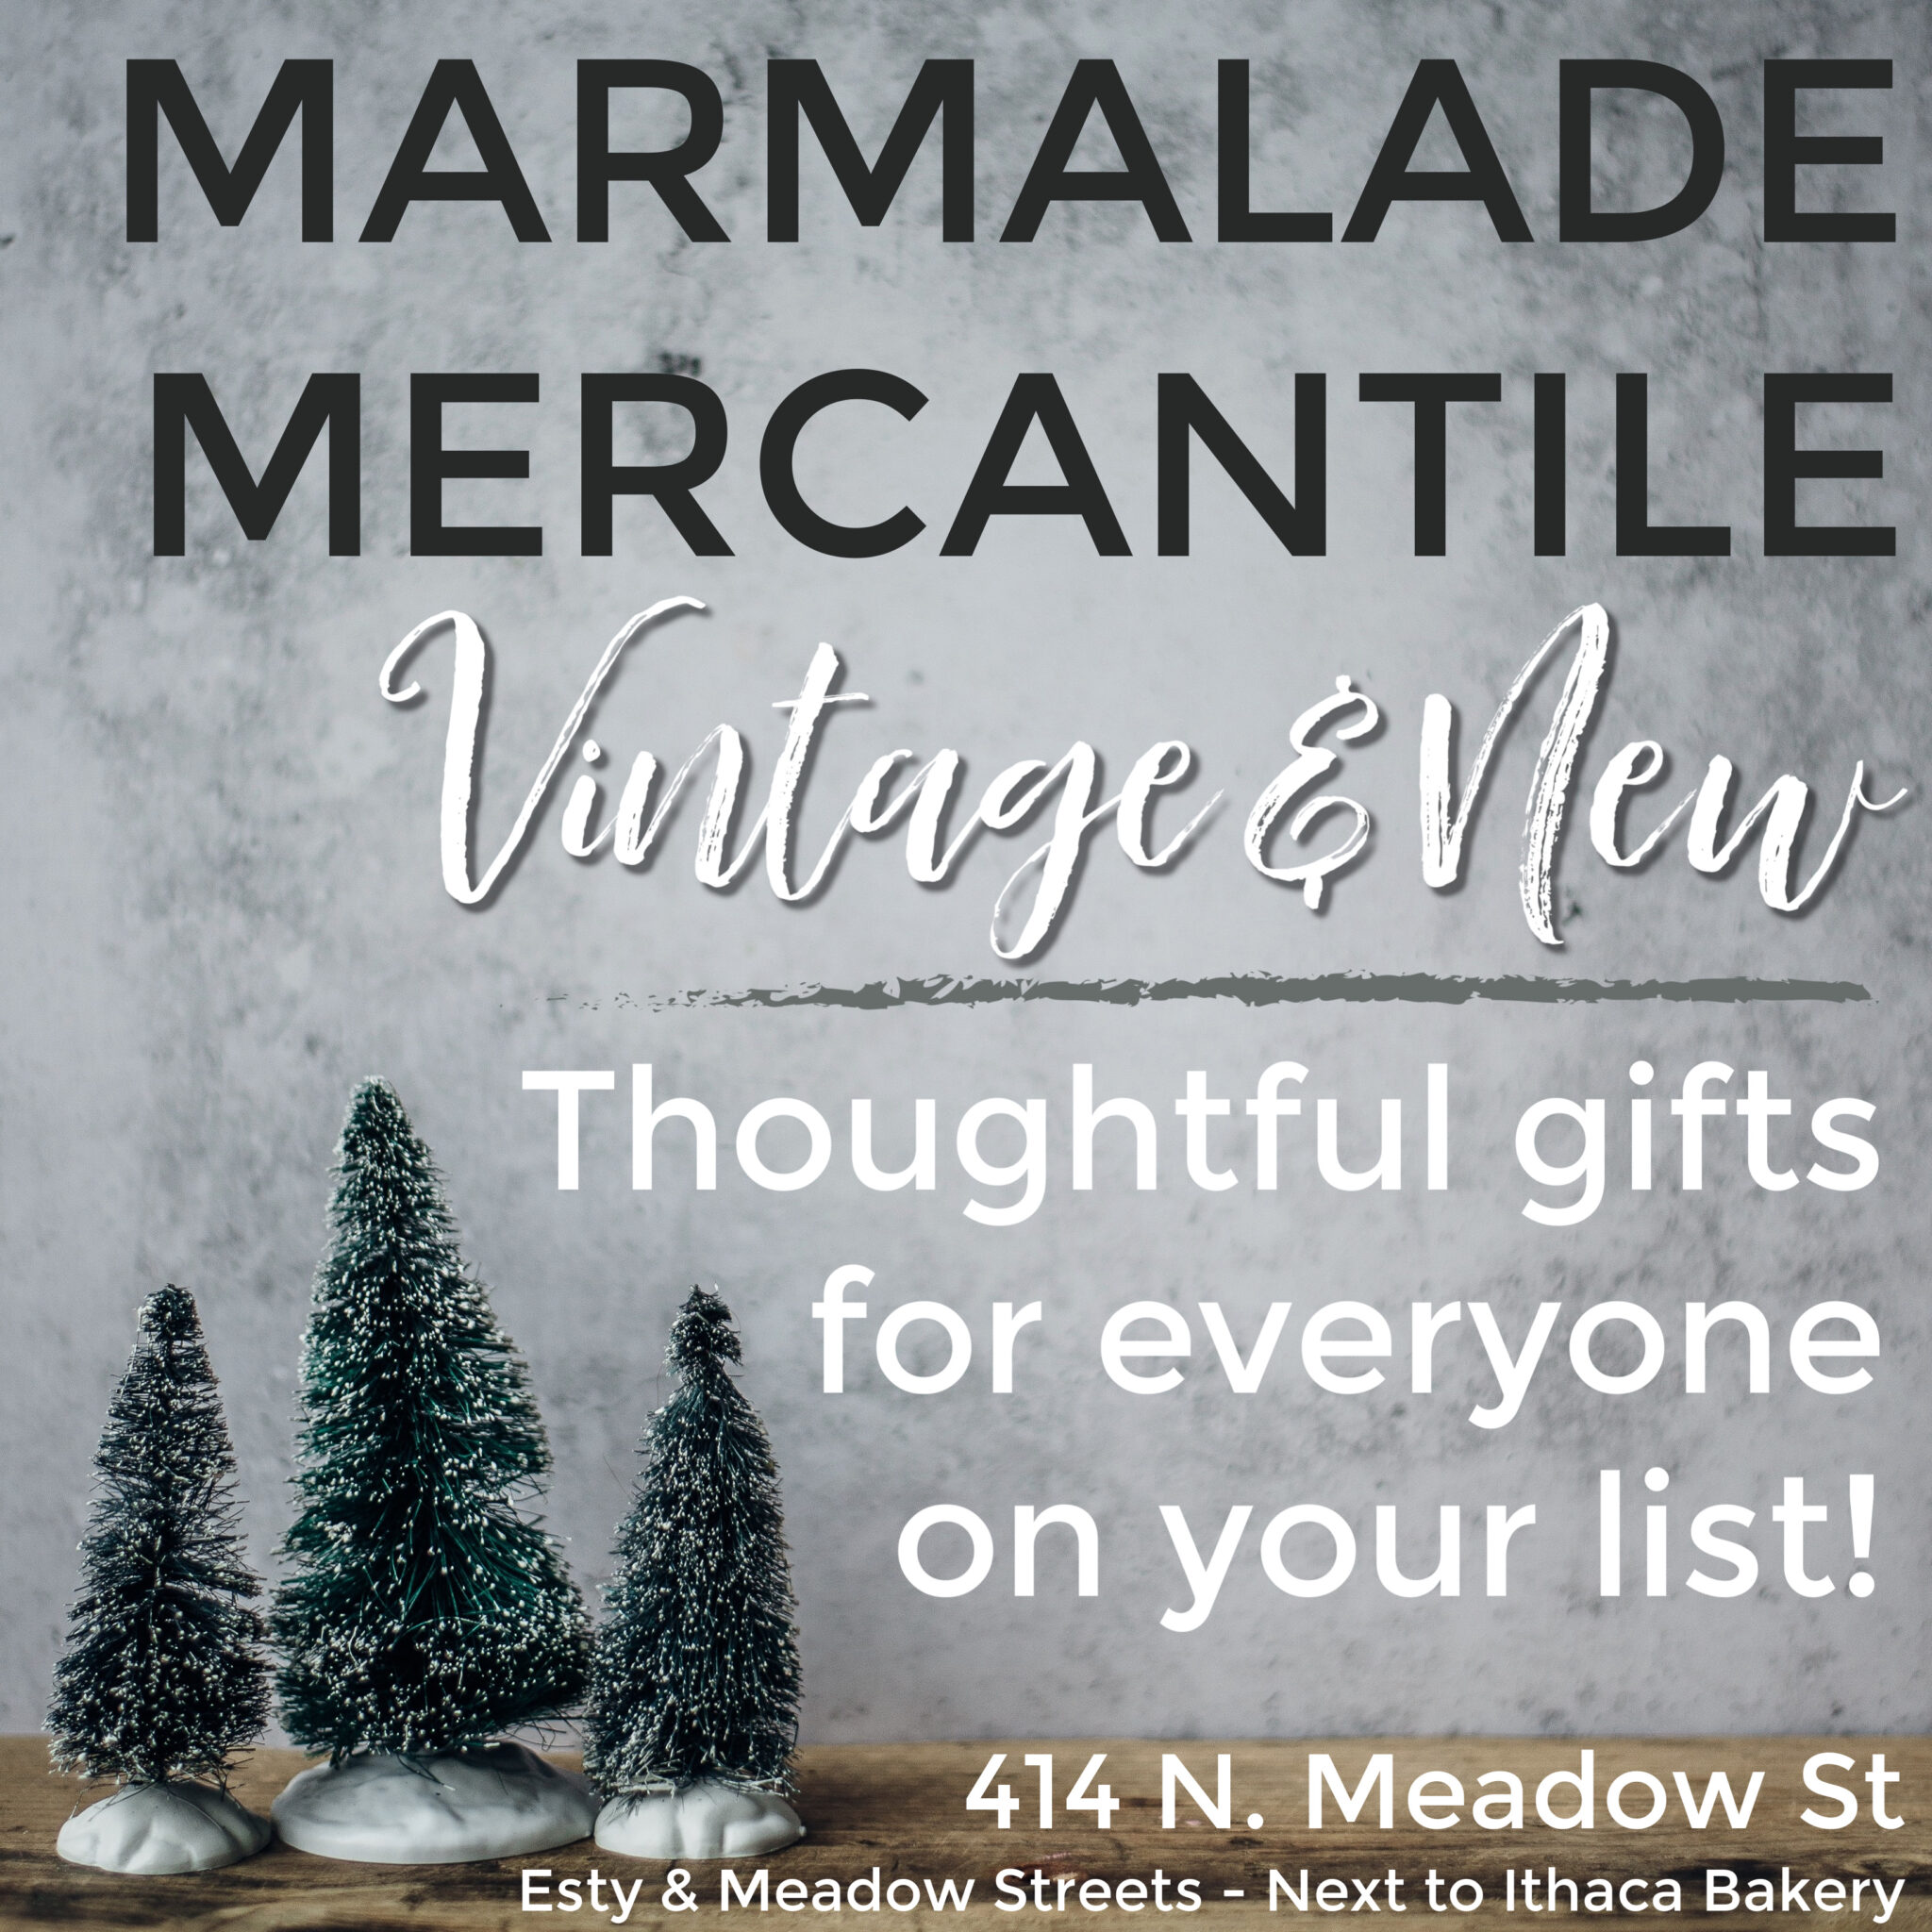 https://flxweather.com/wp-content/uploads/2016/05/marmalade-mercantile-vintage-and-new-thumb-scaled.jpg